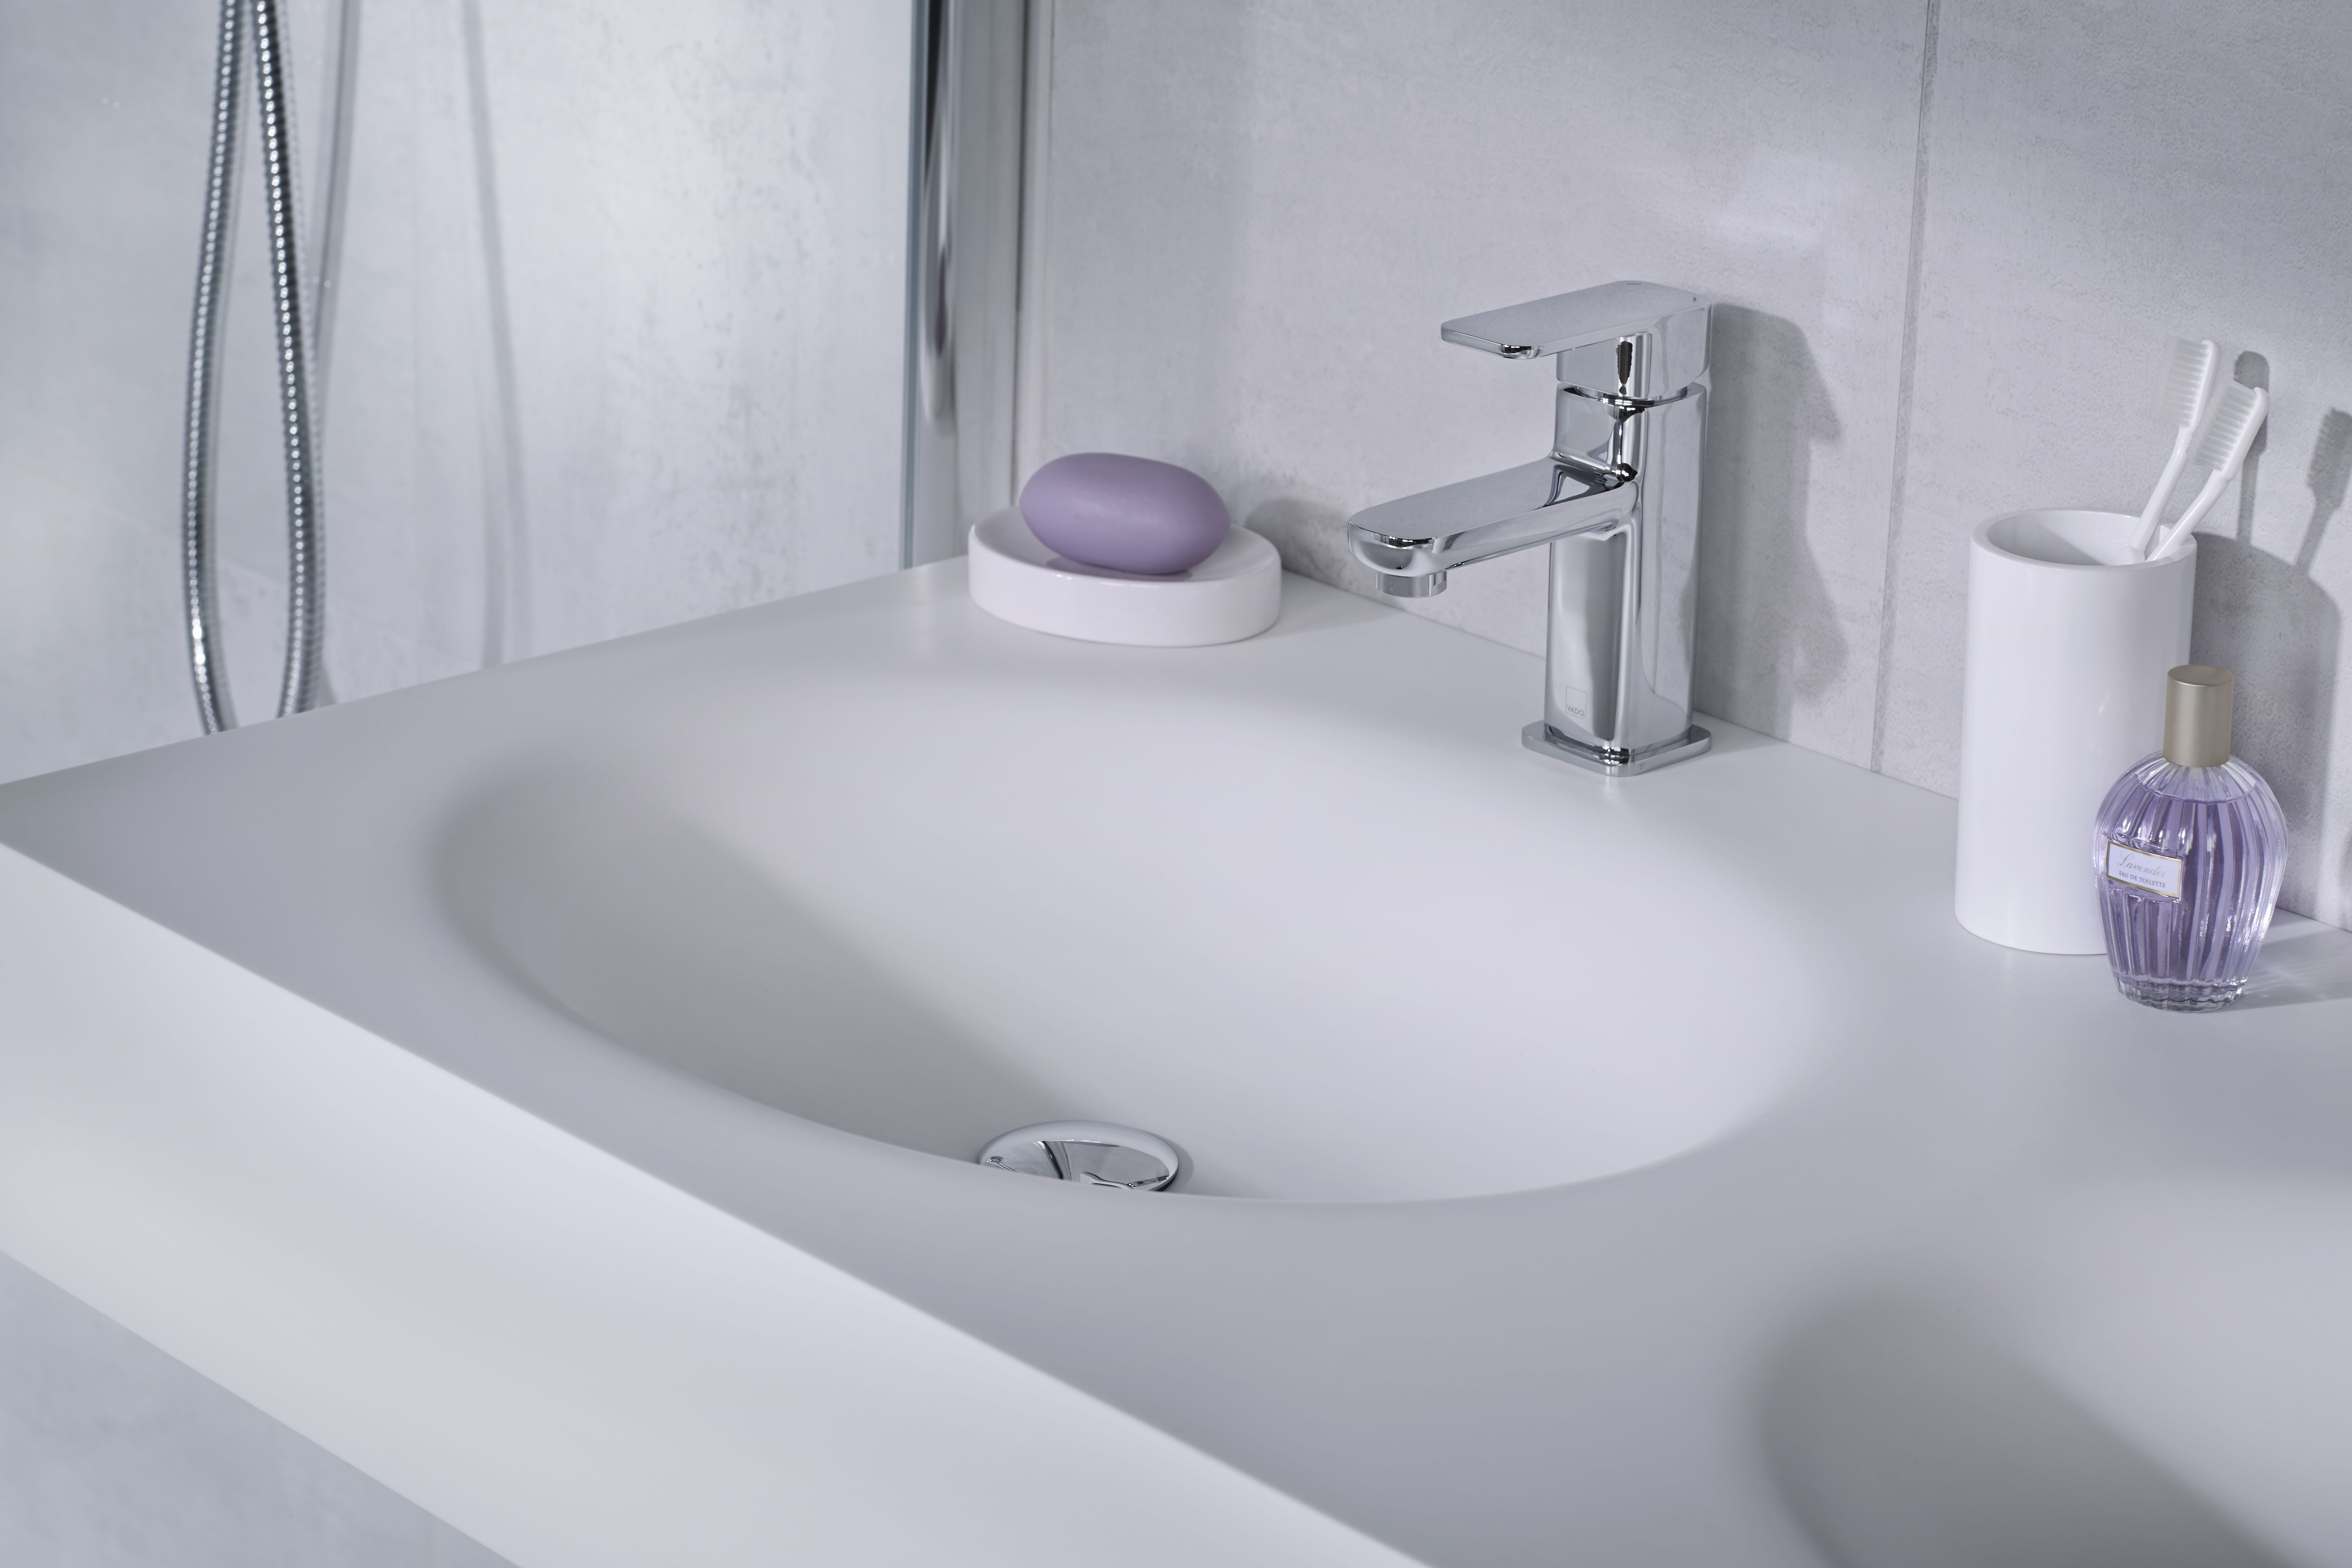 The stunning looks of a fully integrated inset basin vanityhall